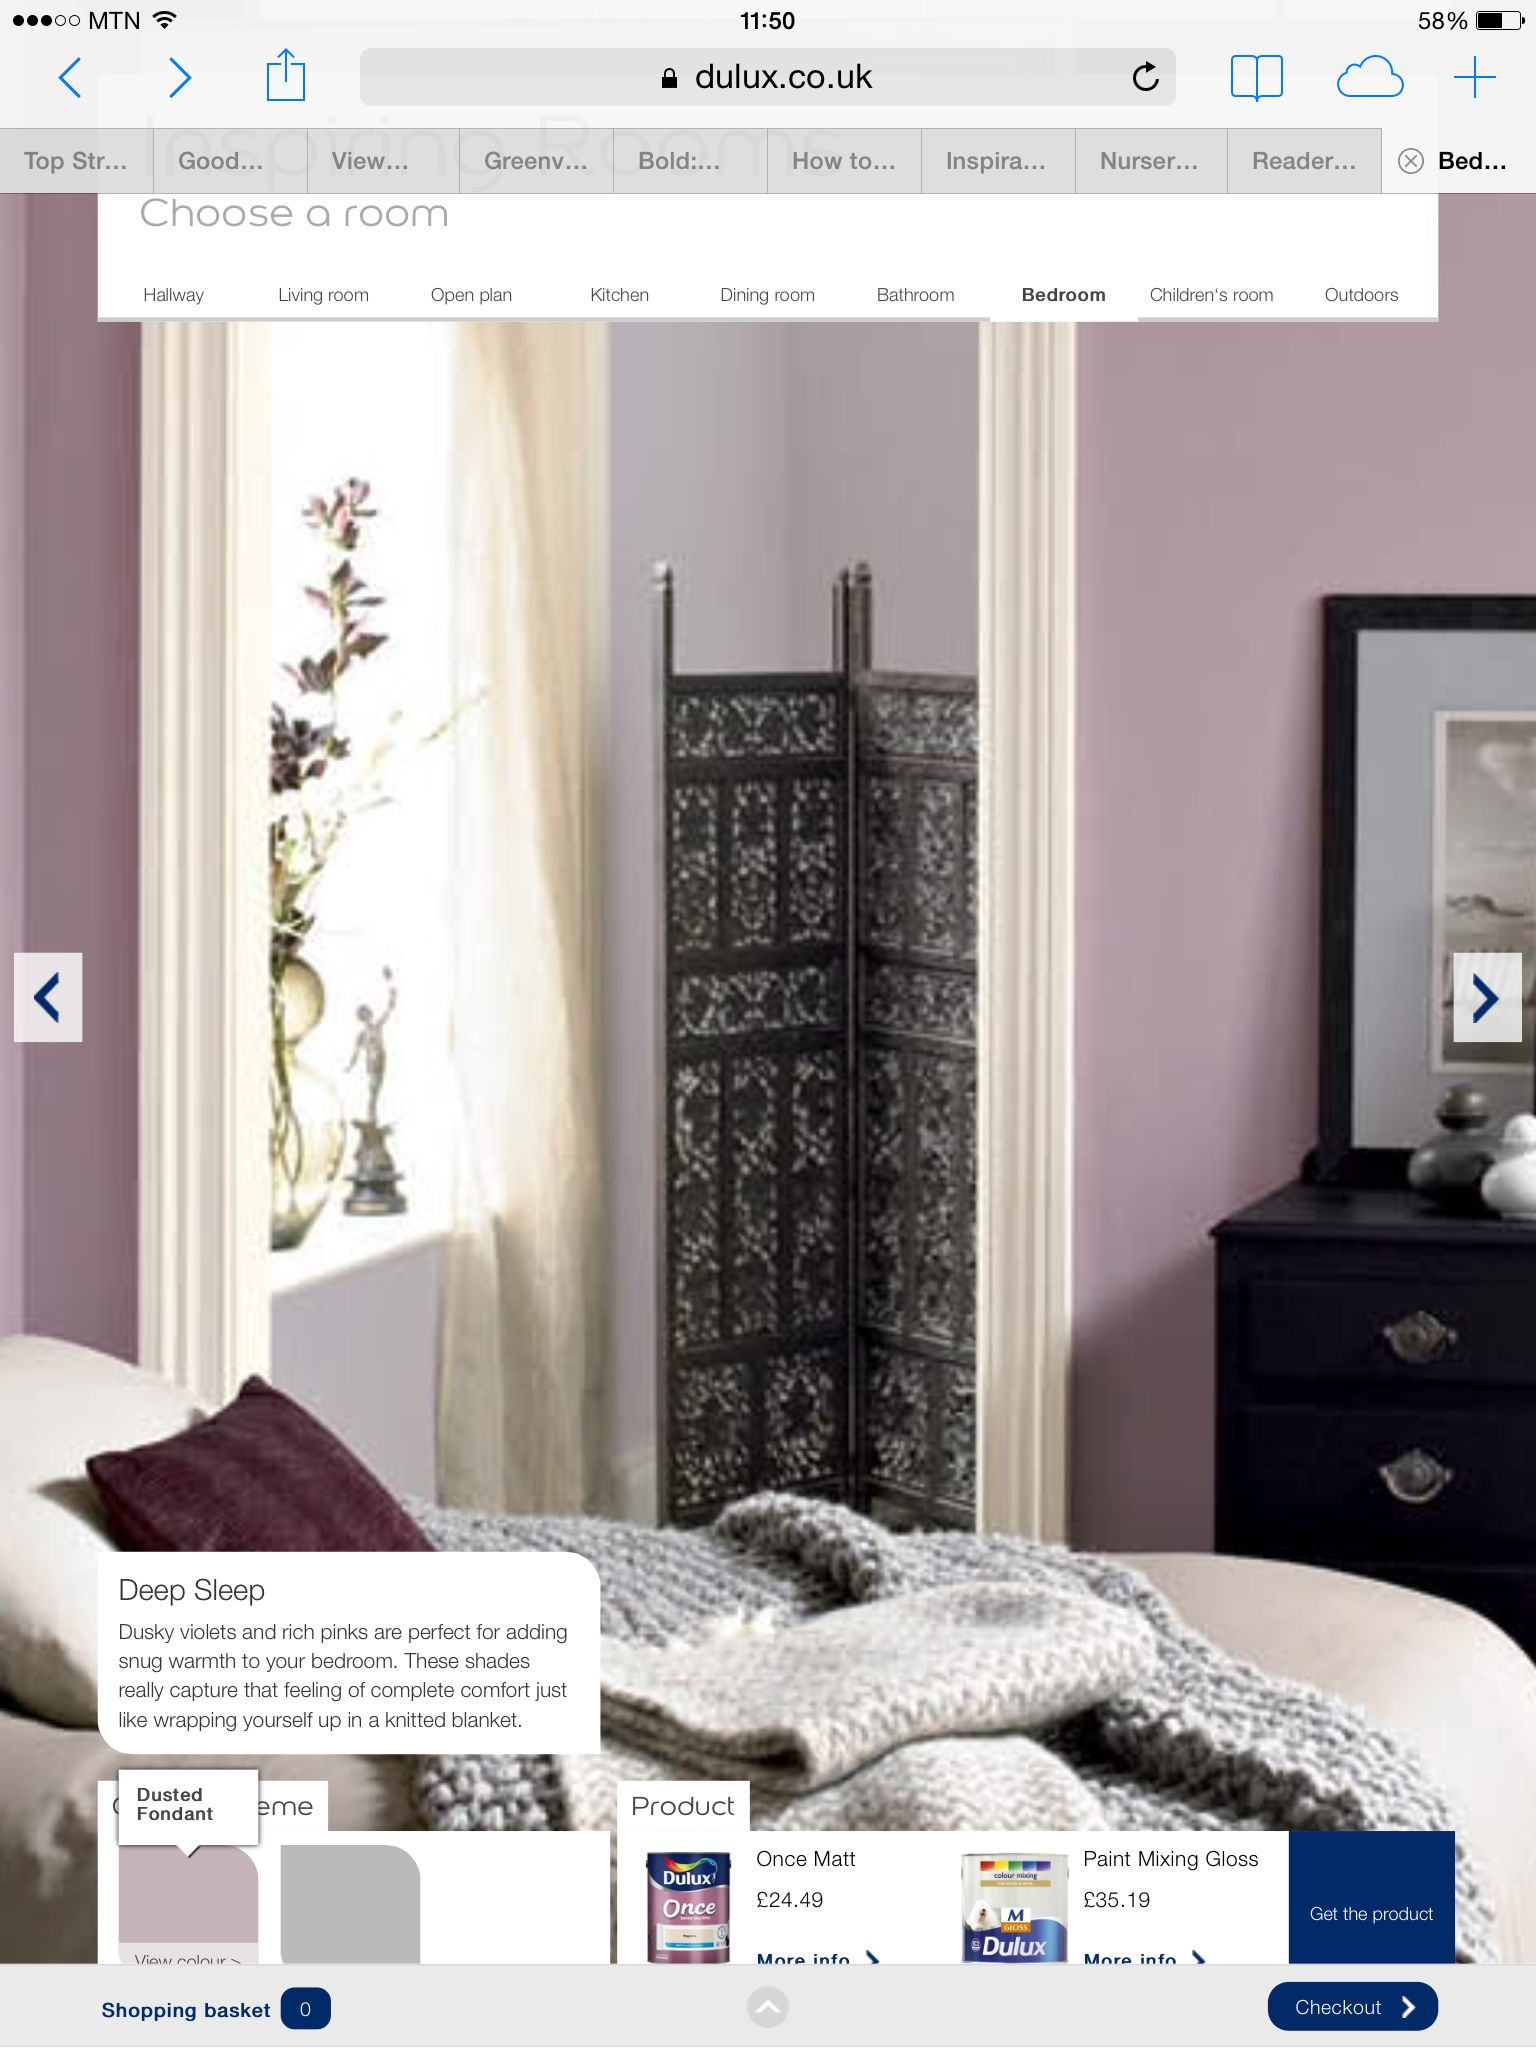 Using Dusted Fondant And Chic Shadow Dulux For Bedroom Paint Refresh Small Colors